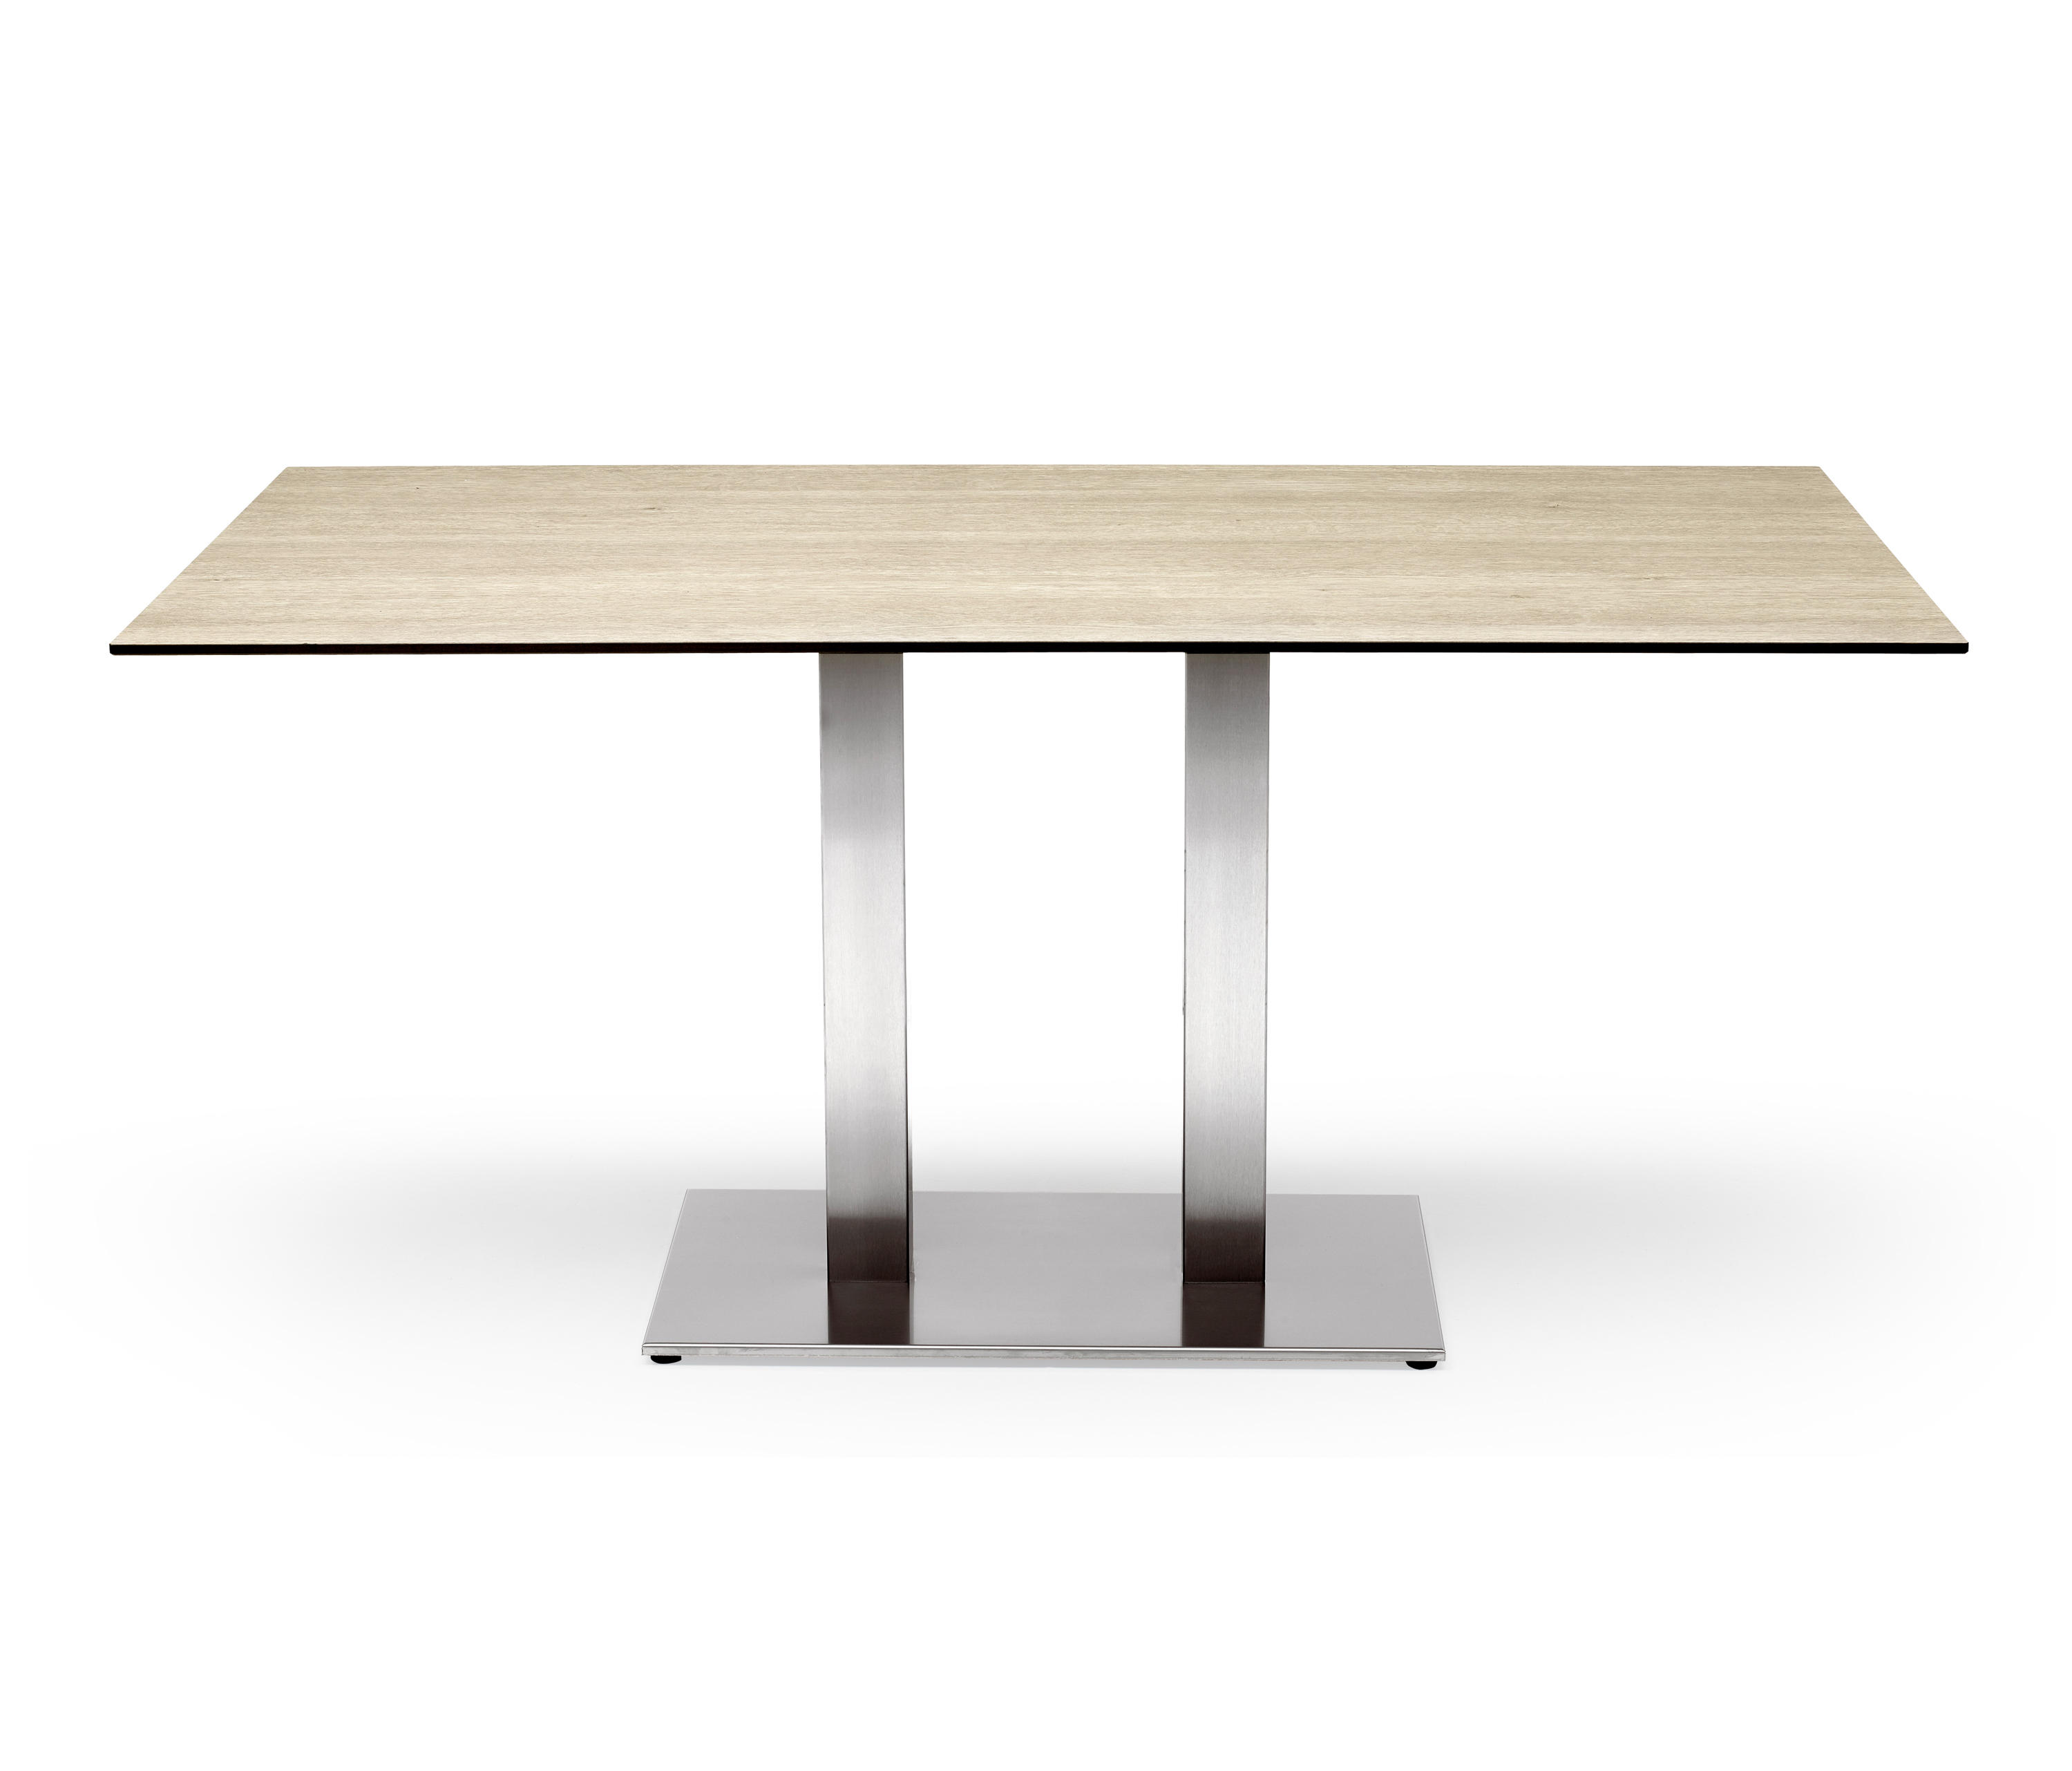 Tiffany two column restaurant tables from scab design for Table design for restaurant